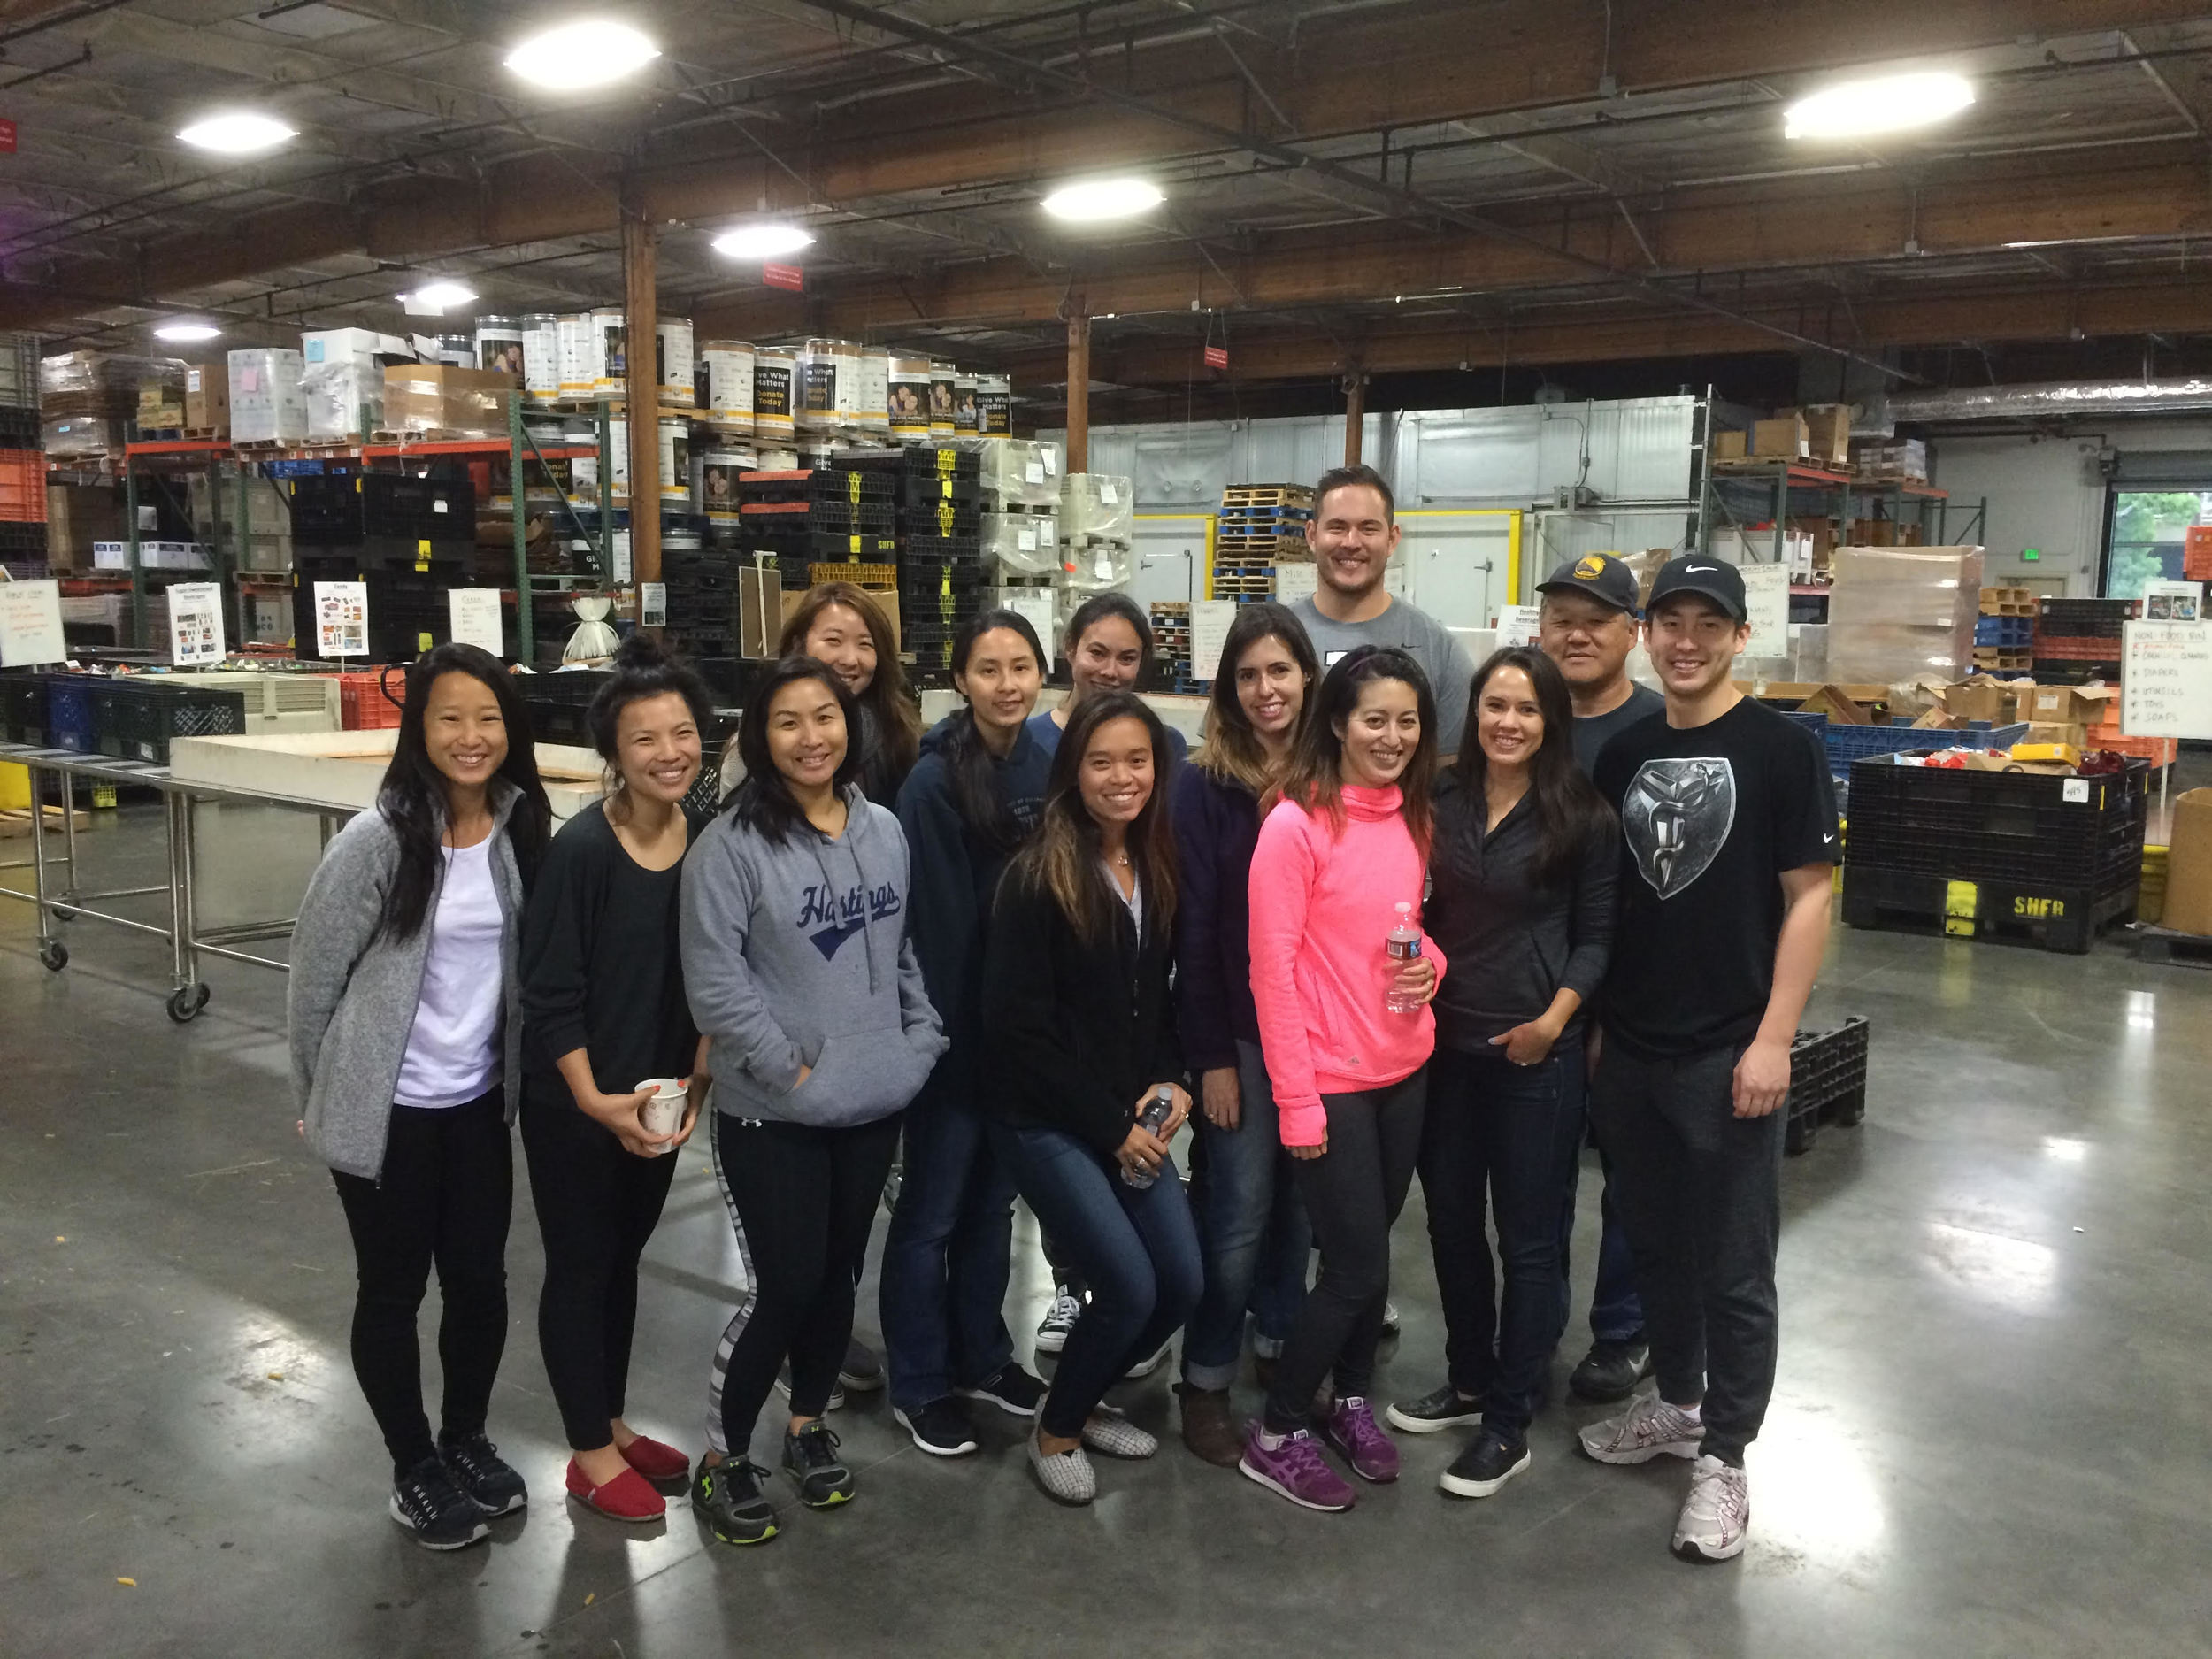 Mary Nguyen - 2016-05-07 WIL Power Hour 2 at Second Harvest Food Bank (1).jpg